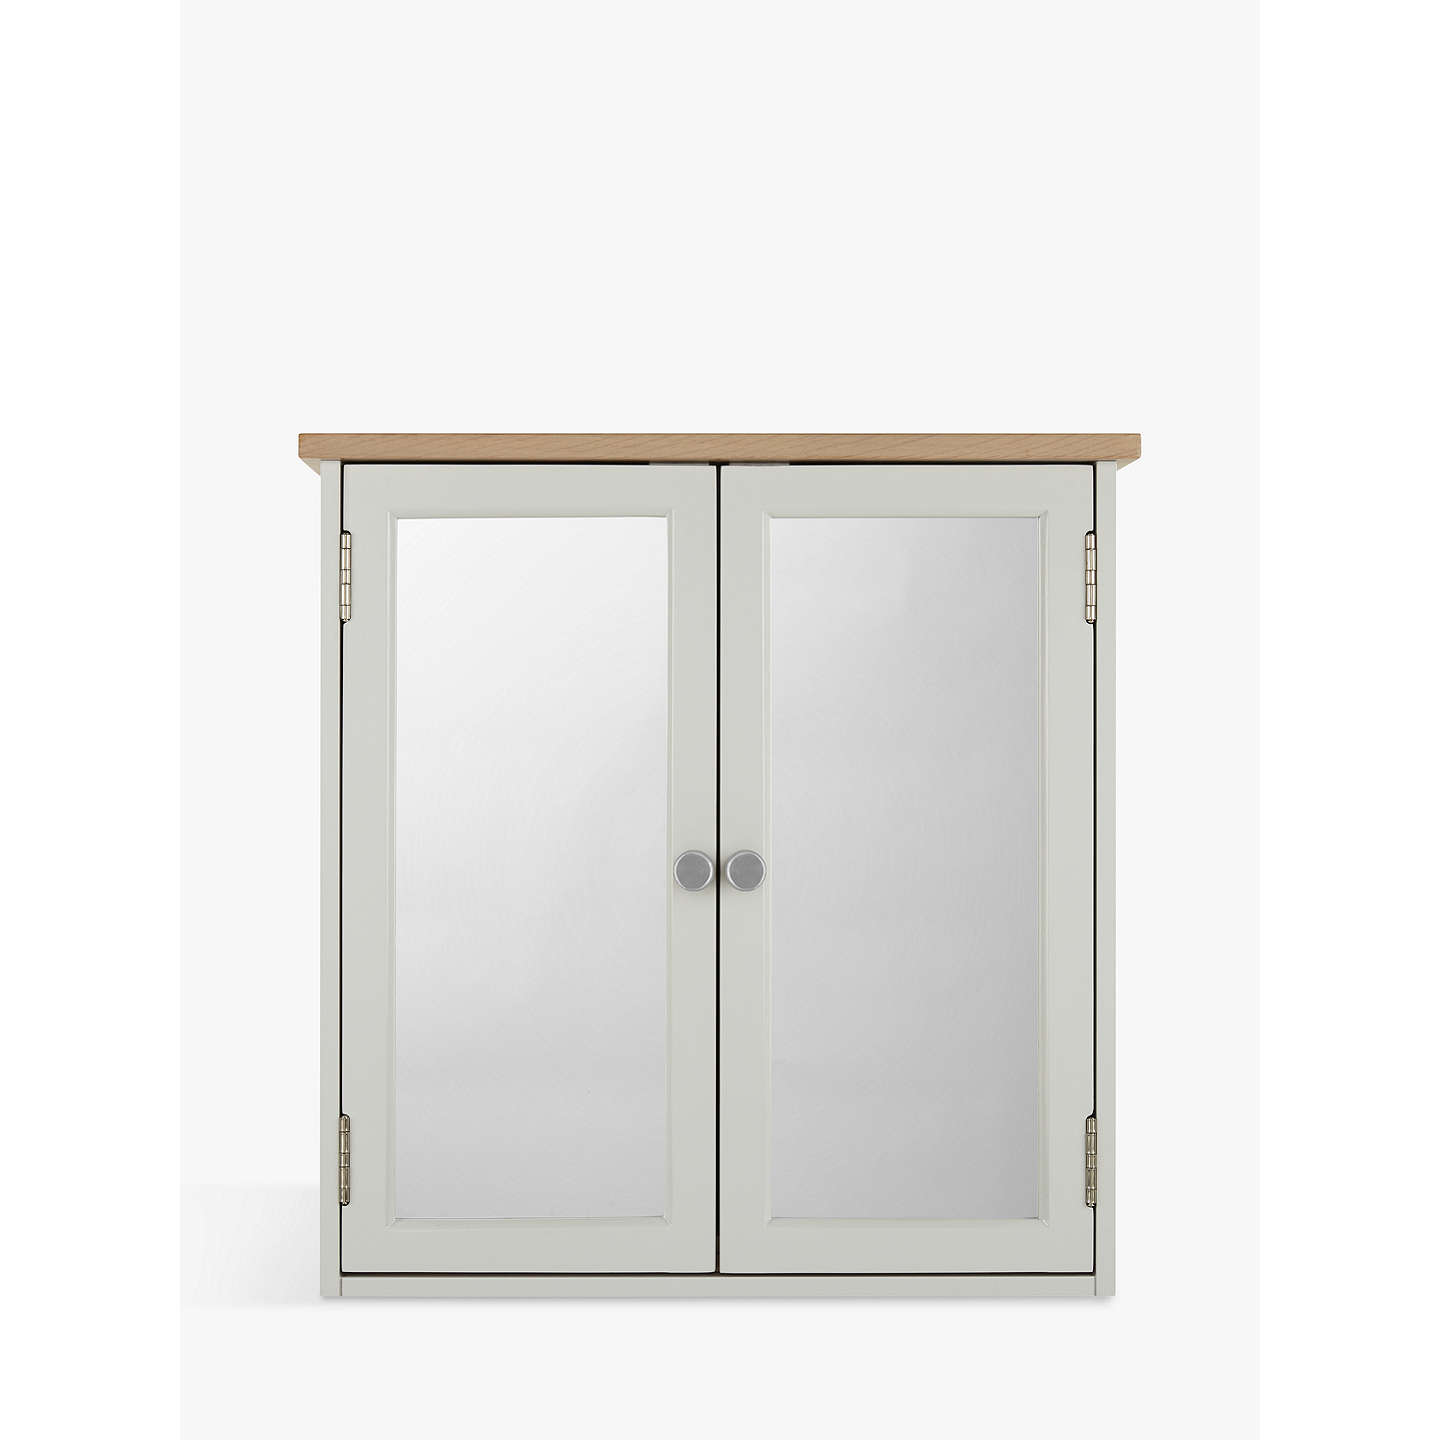 Croft collection blakeney double mirrored bathroom cabinet - Mirrored bathroom cabinet with lights ...